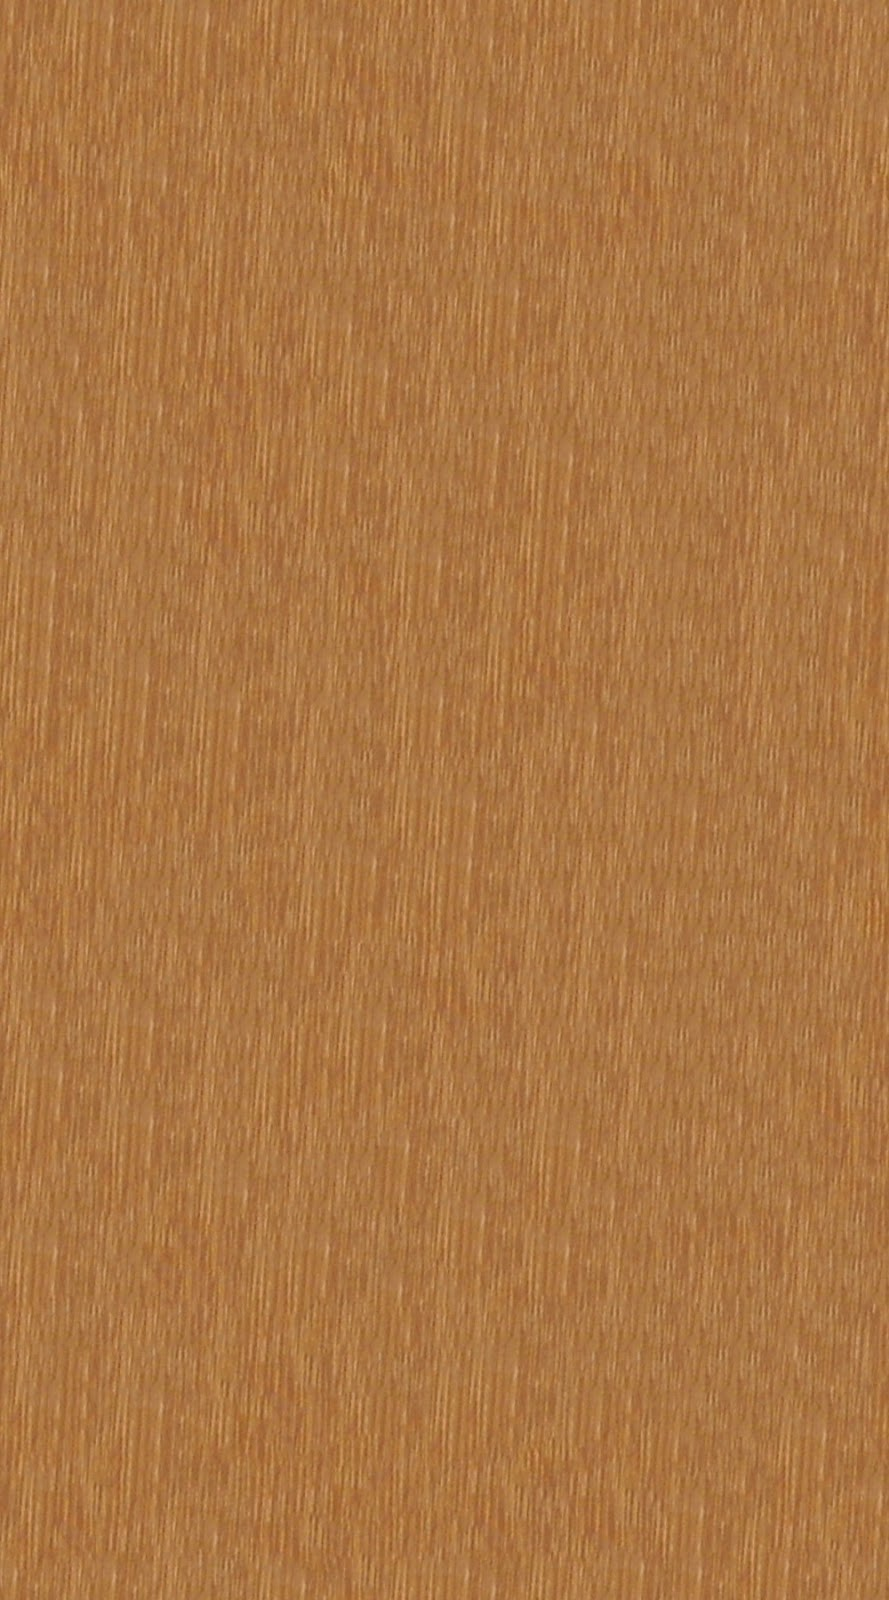 Photos: Free Architectural Textures: Seamless Wood